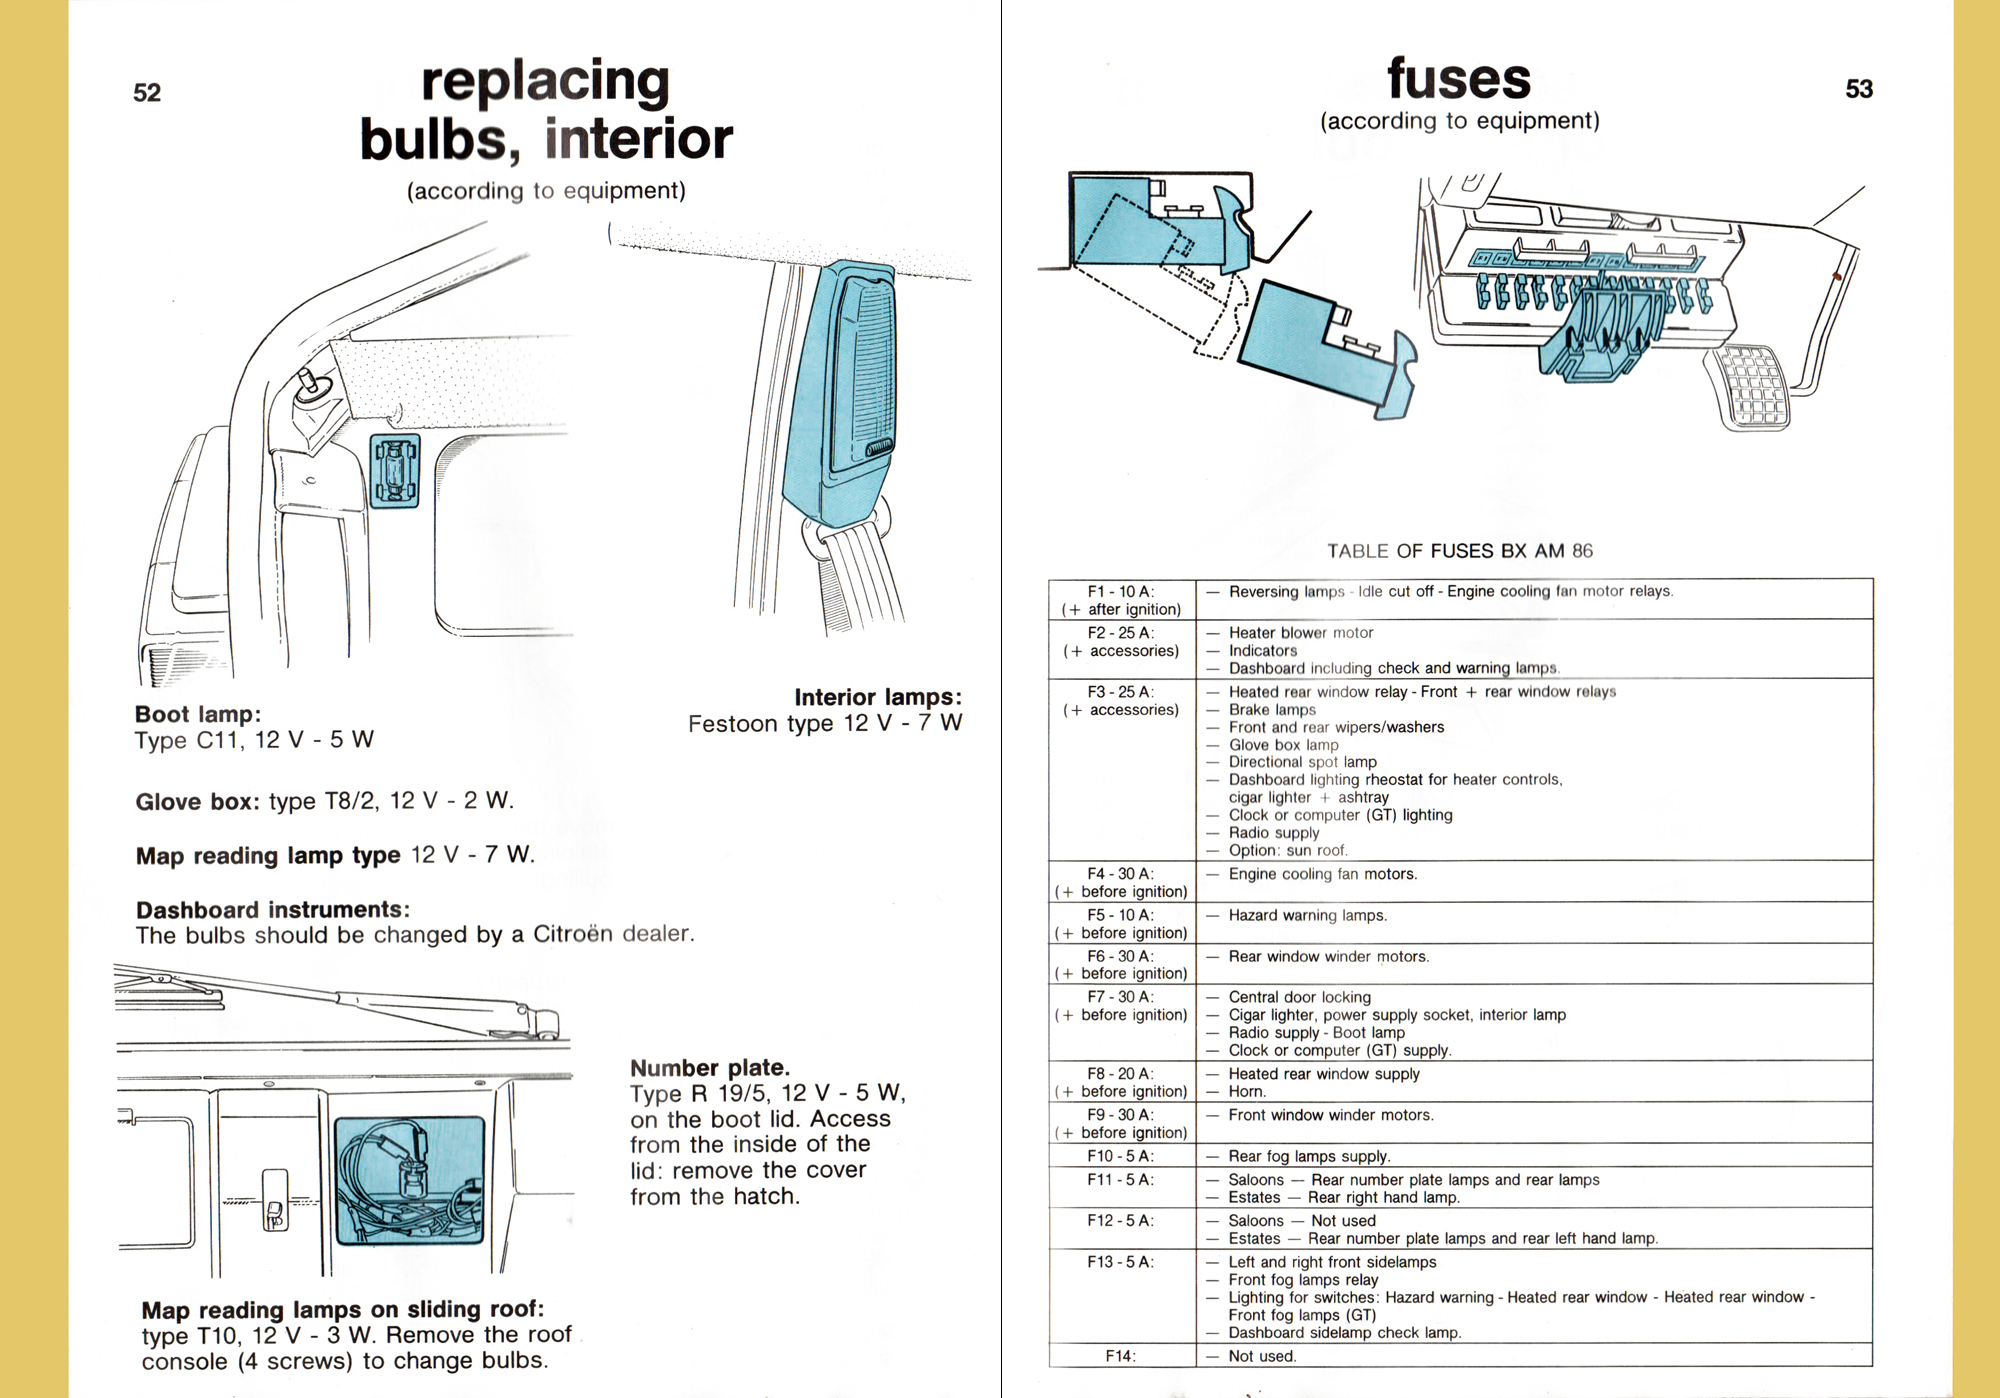 Citron Bx 14 16 19 Gt Owners Manual Citroen Engine Cooling Diagram Click For Large Image